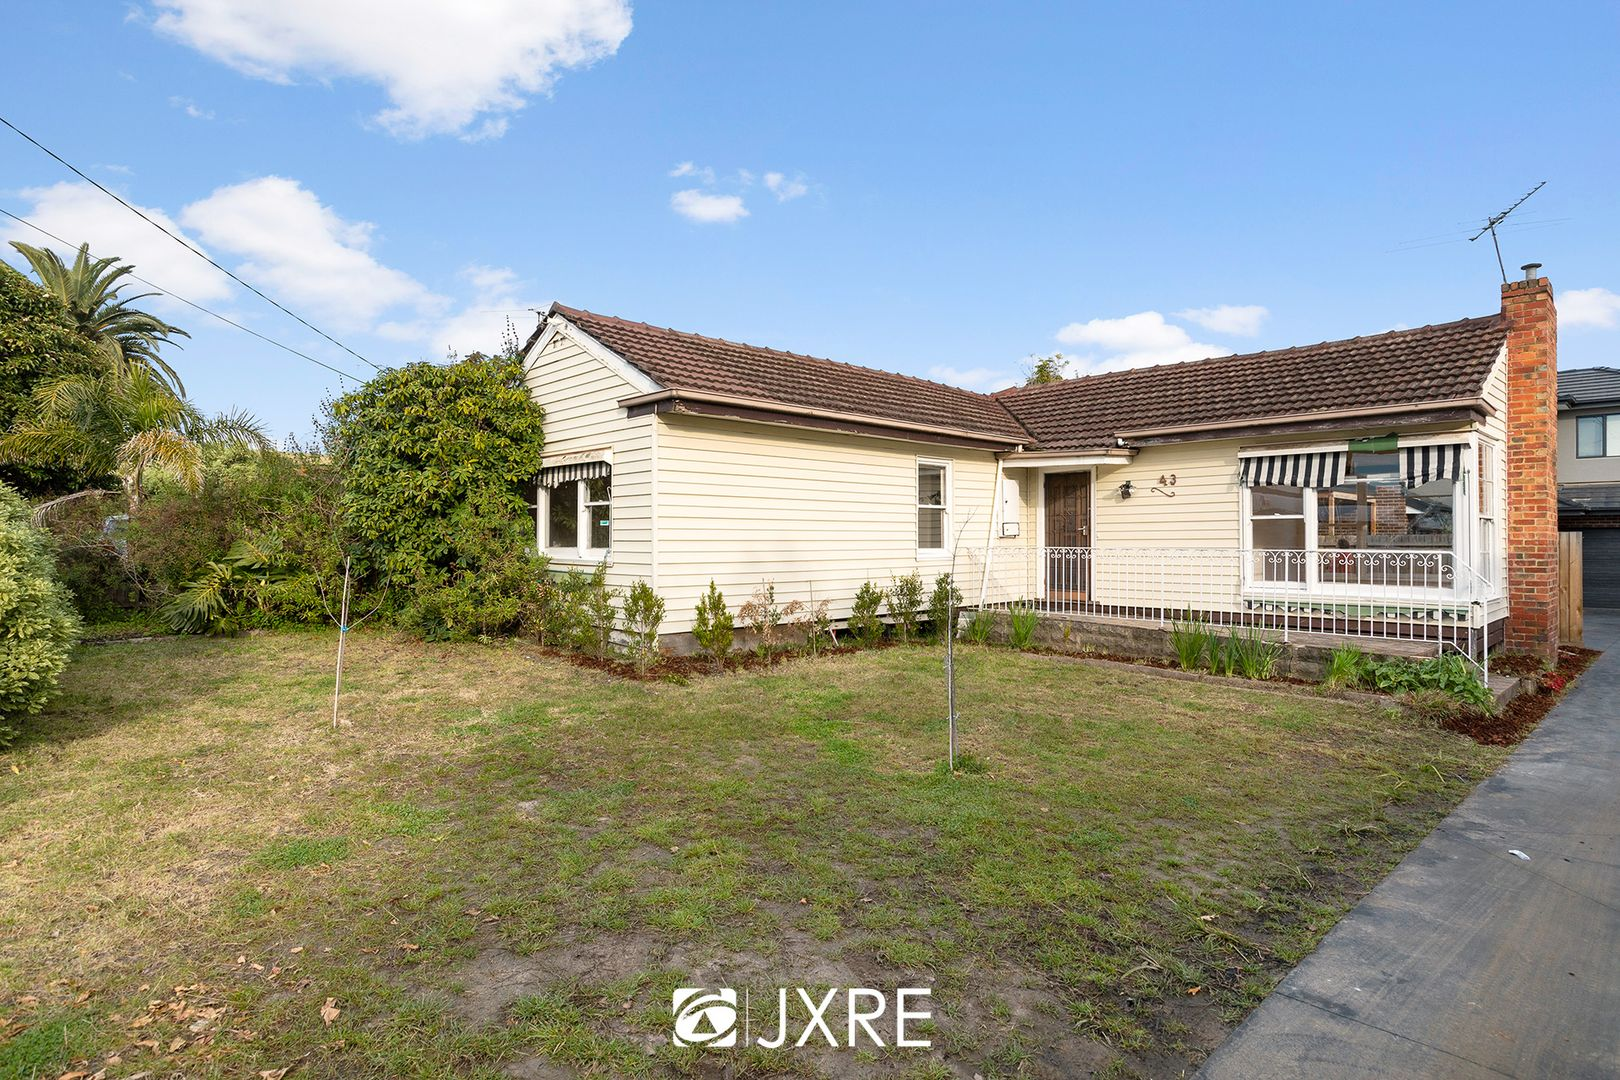 1/43 Clayton Road, Oakleigh East VIC 3166, Image 0